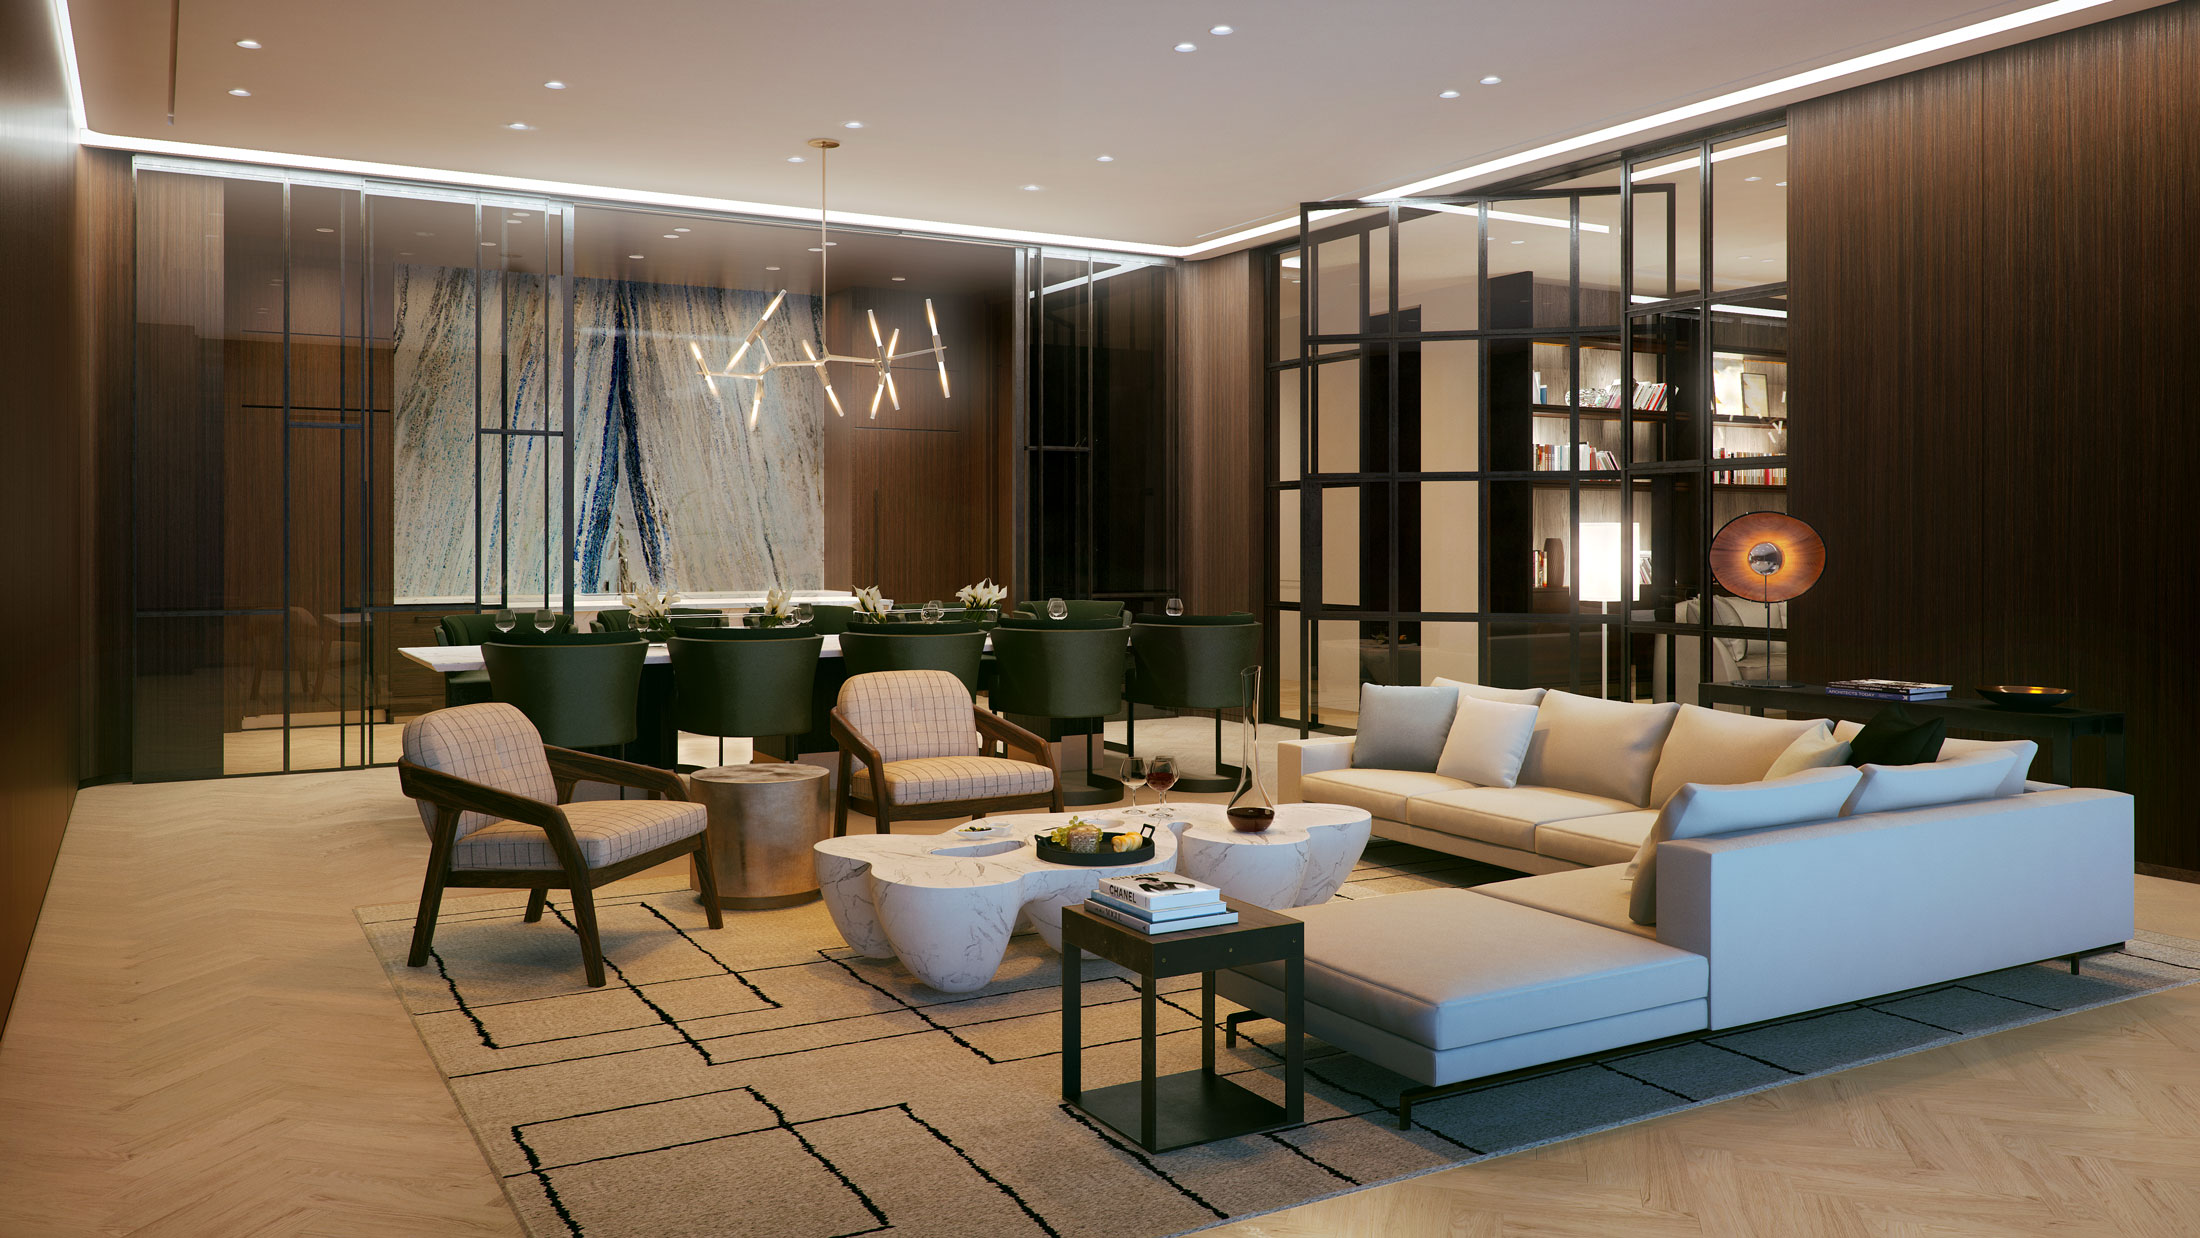 Architectural Rendering of the interior of the 456 Washington Street project located in Tribeca, New York City